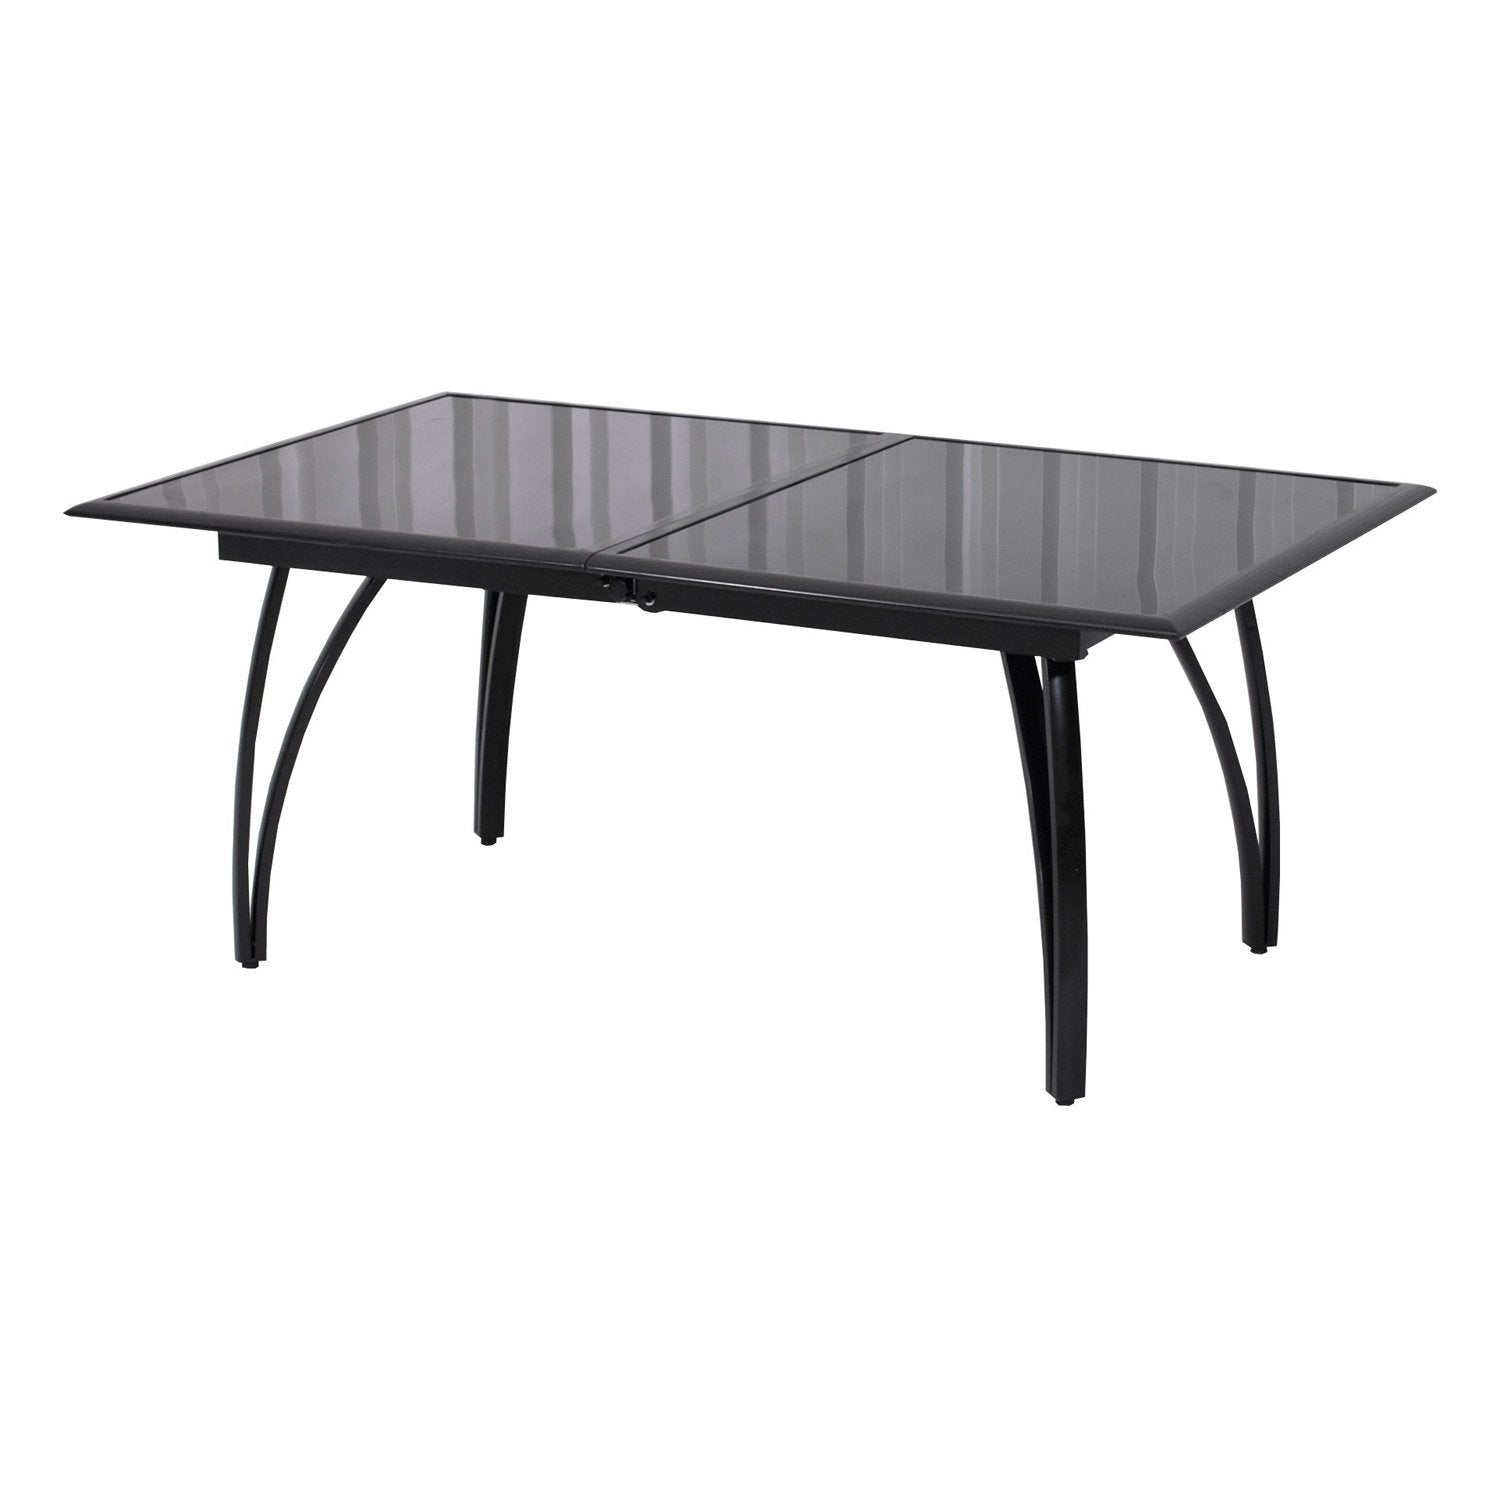 table de jardin rectangulaire noir 10 personnes leroy merlin. Black Bedroom Furniture Sets. Home Design Ideas